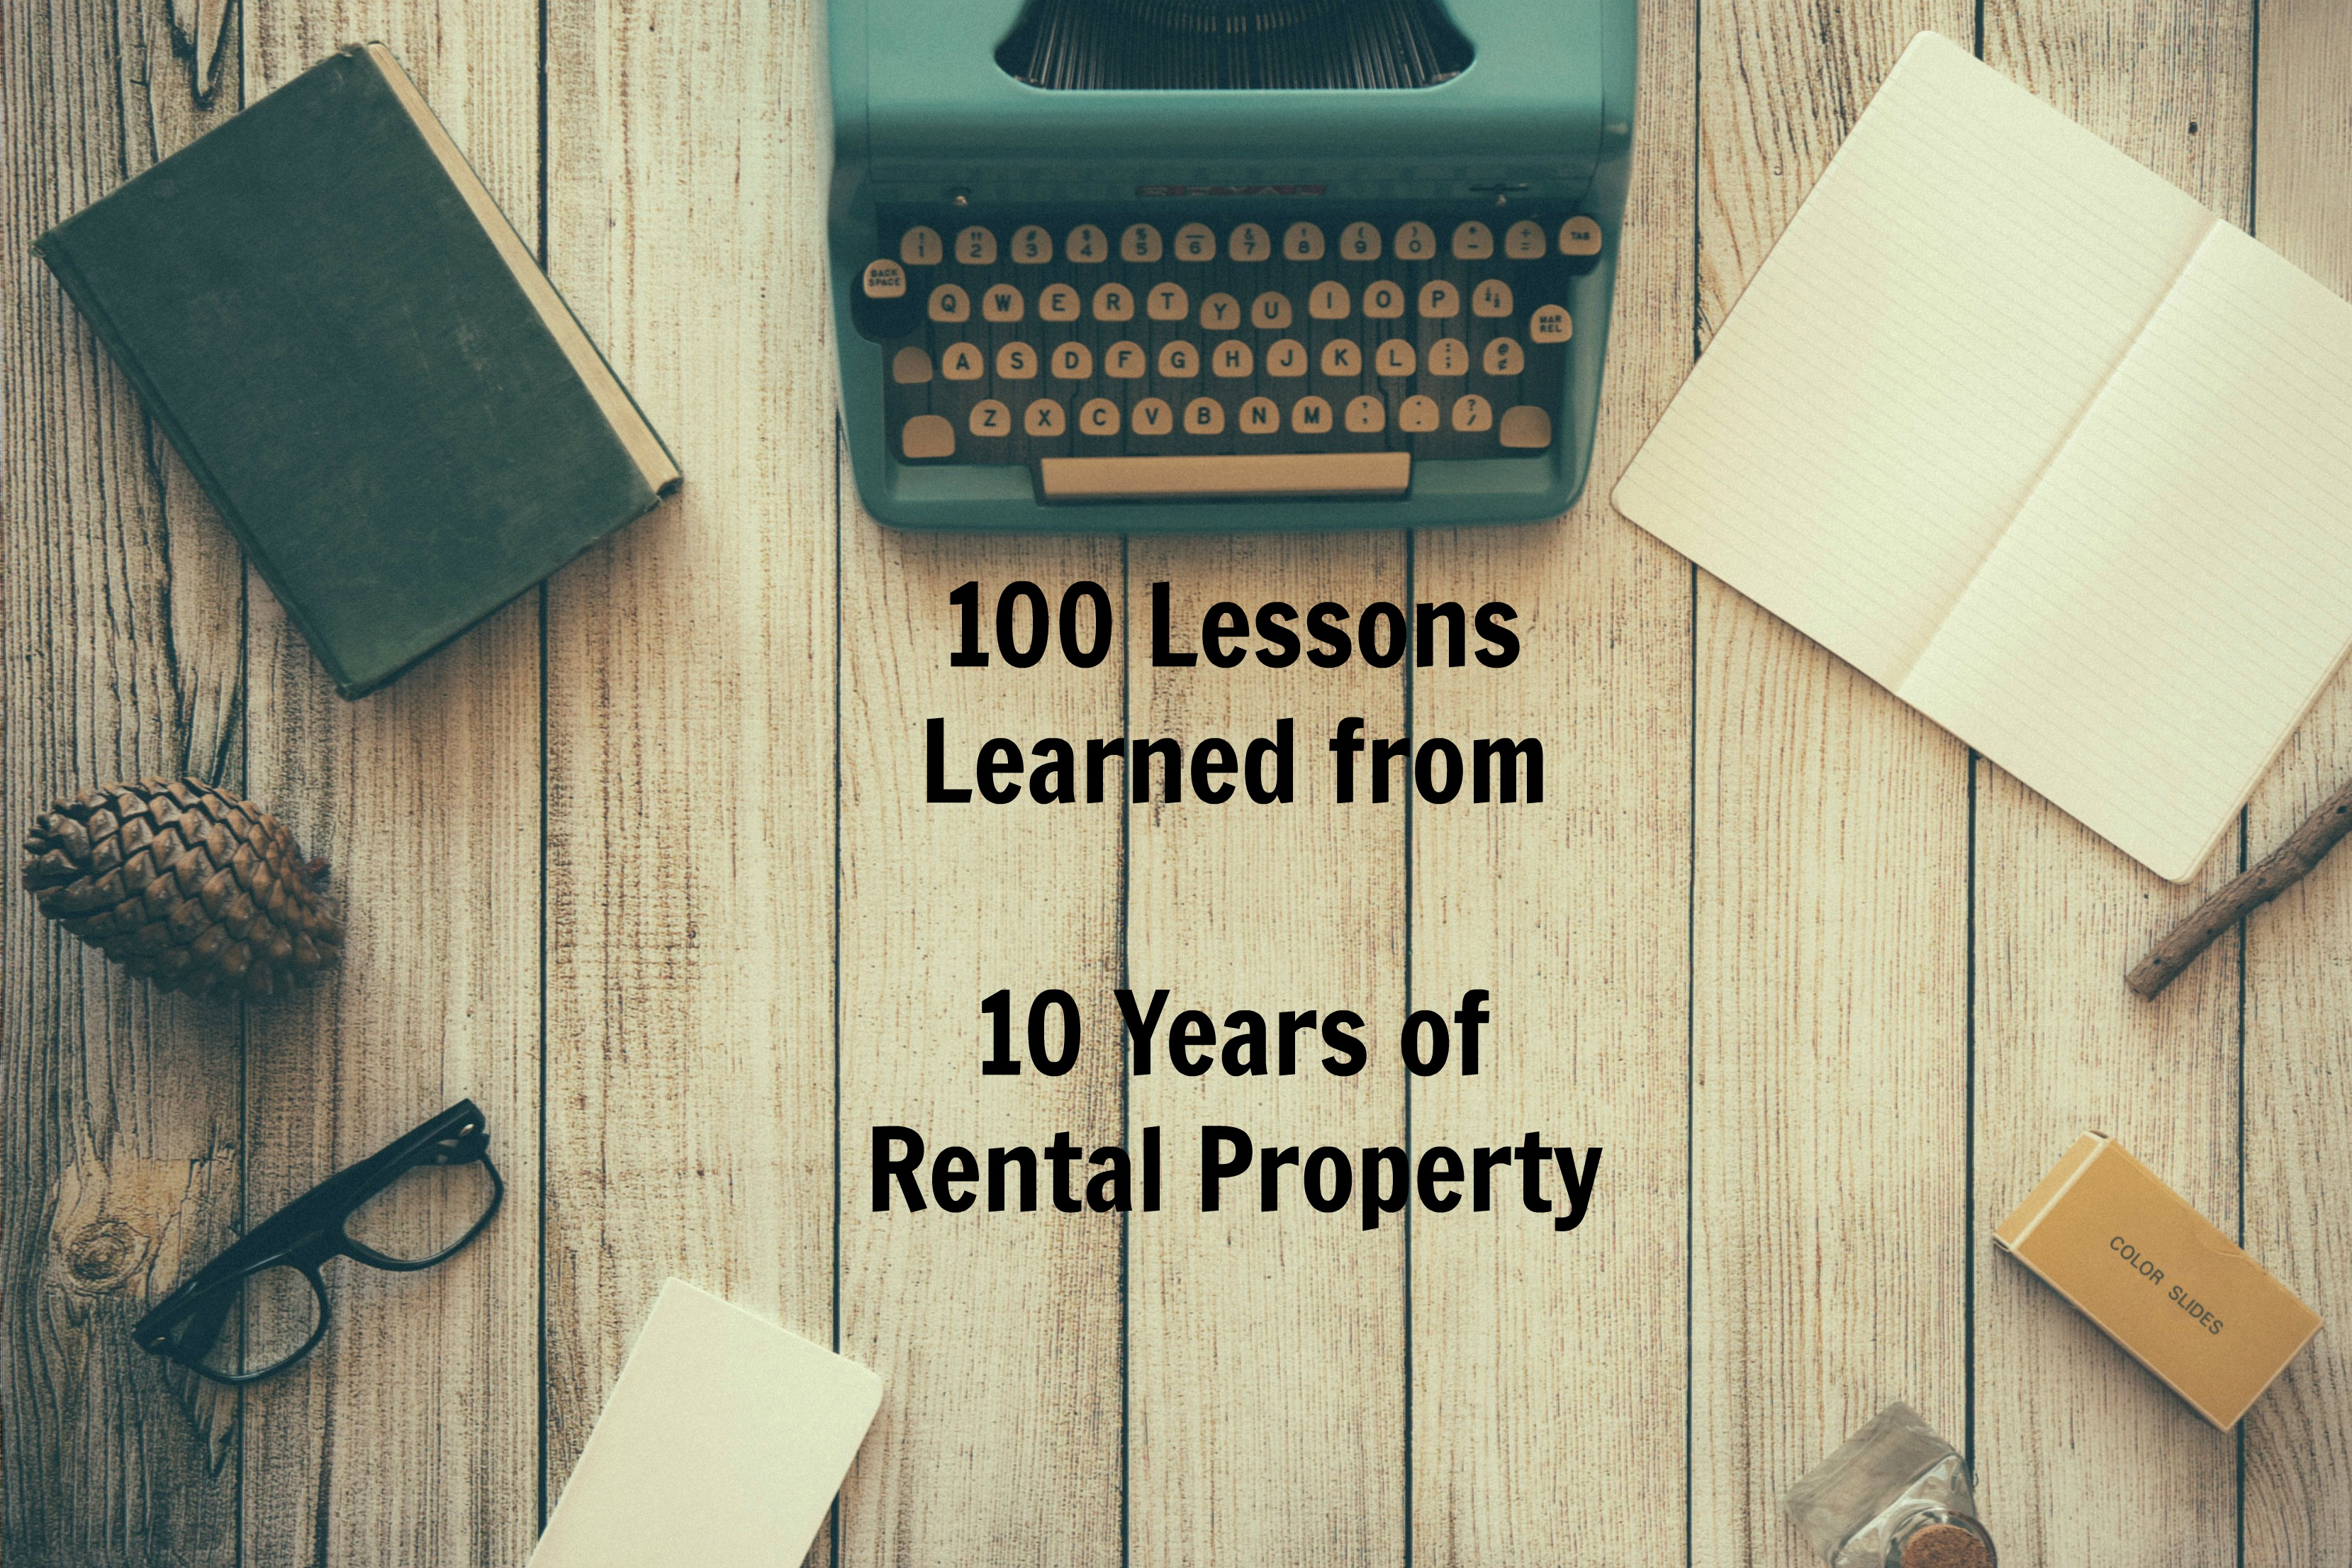 100 Lessons Learned from 10 Years of Rental Property